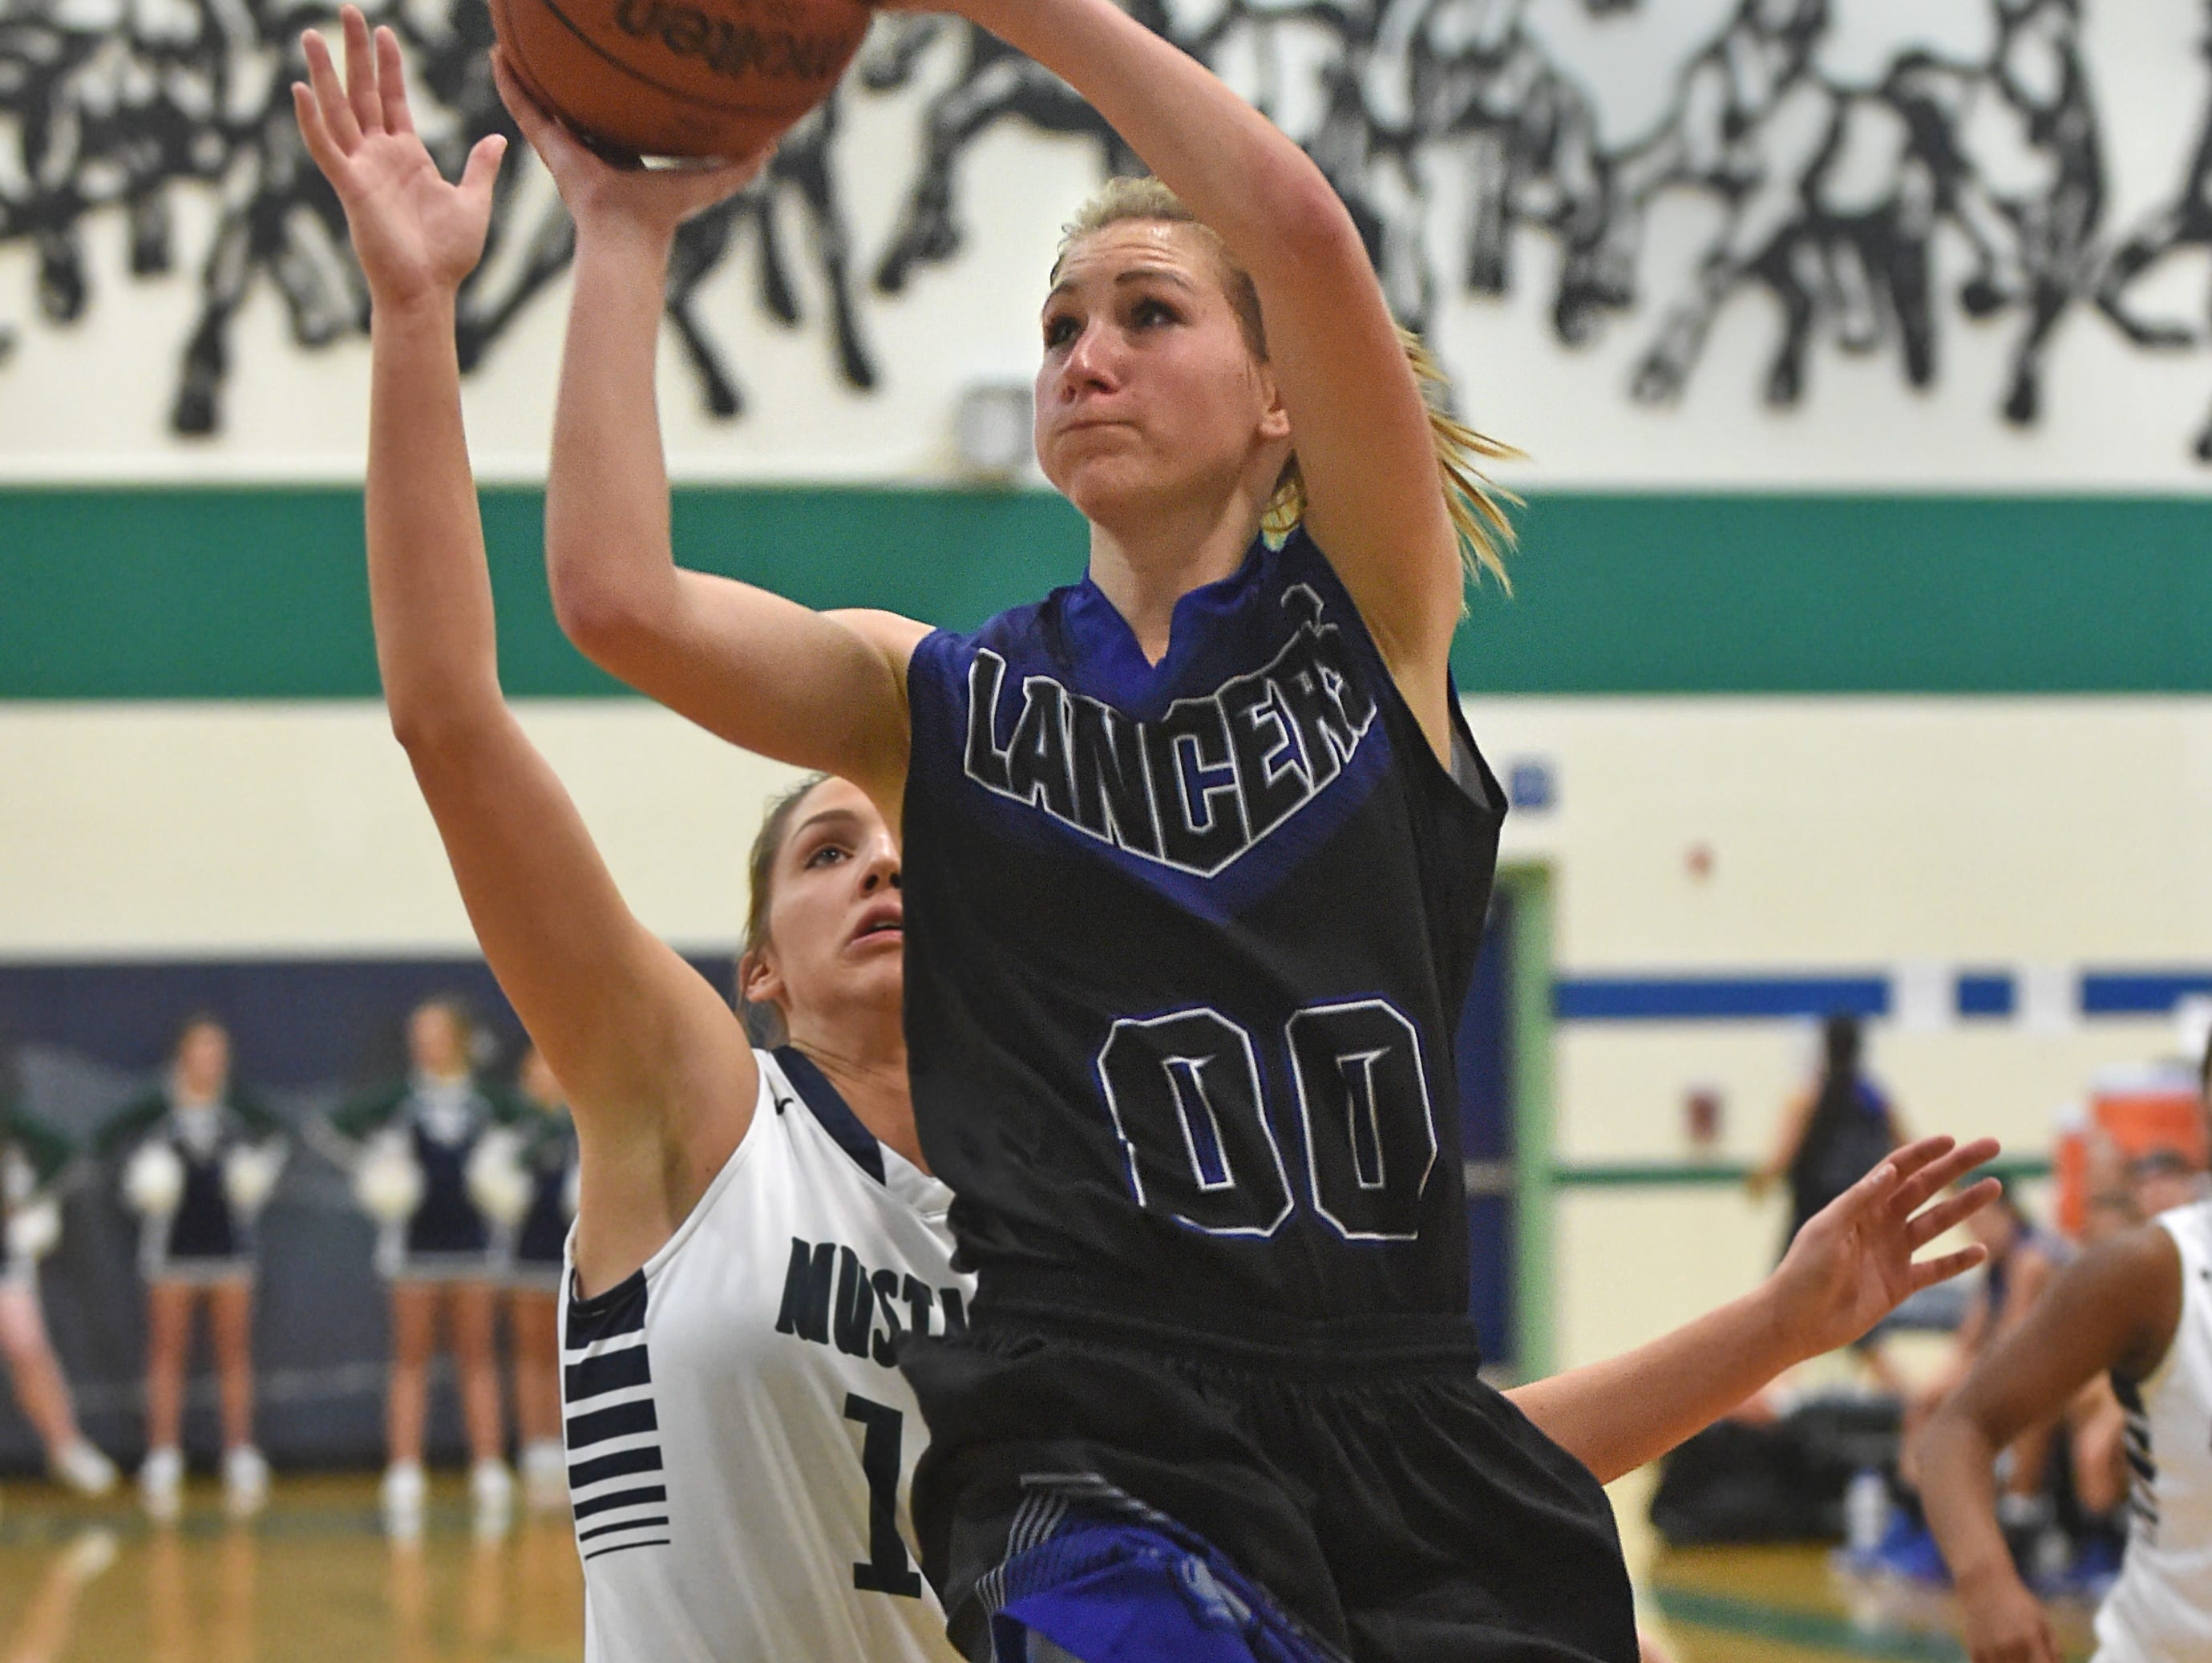 McQueen sophomore Izzy Warren goes up to score with Damonte's Morgan Waller covering her in Tuesday's game at Damonte Ranch High School on Dec. 1, 2015.